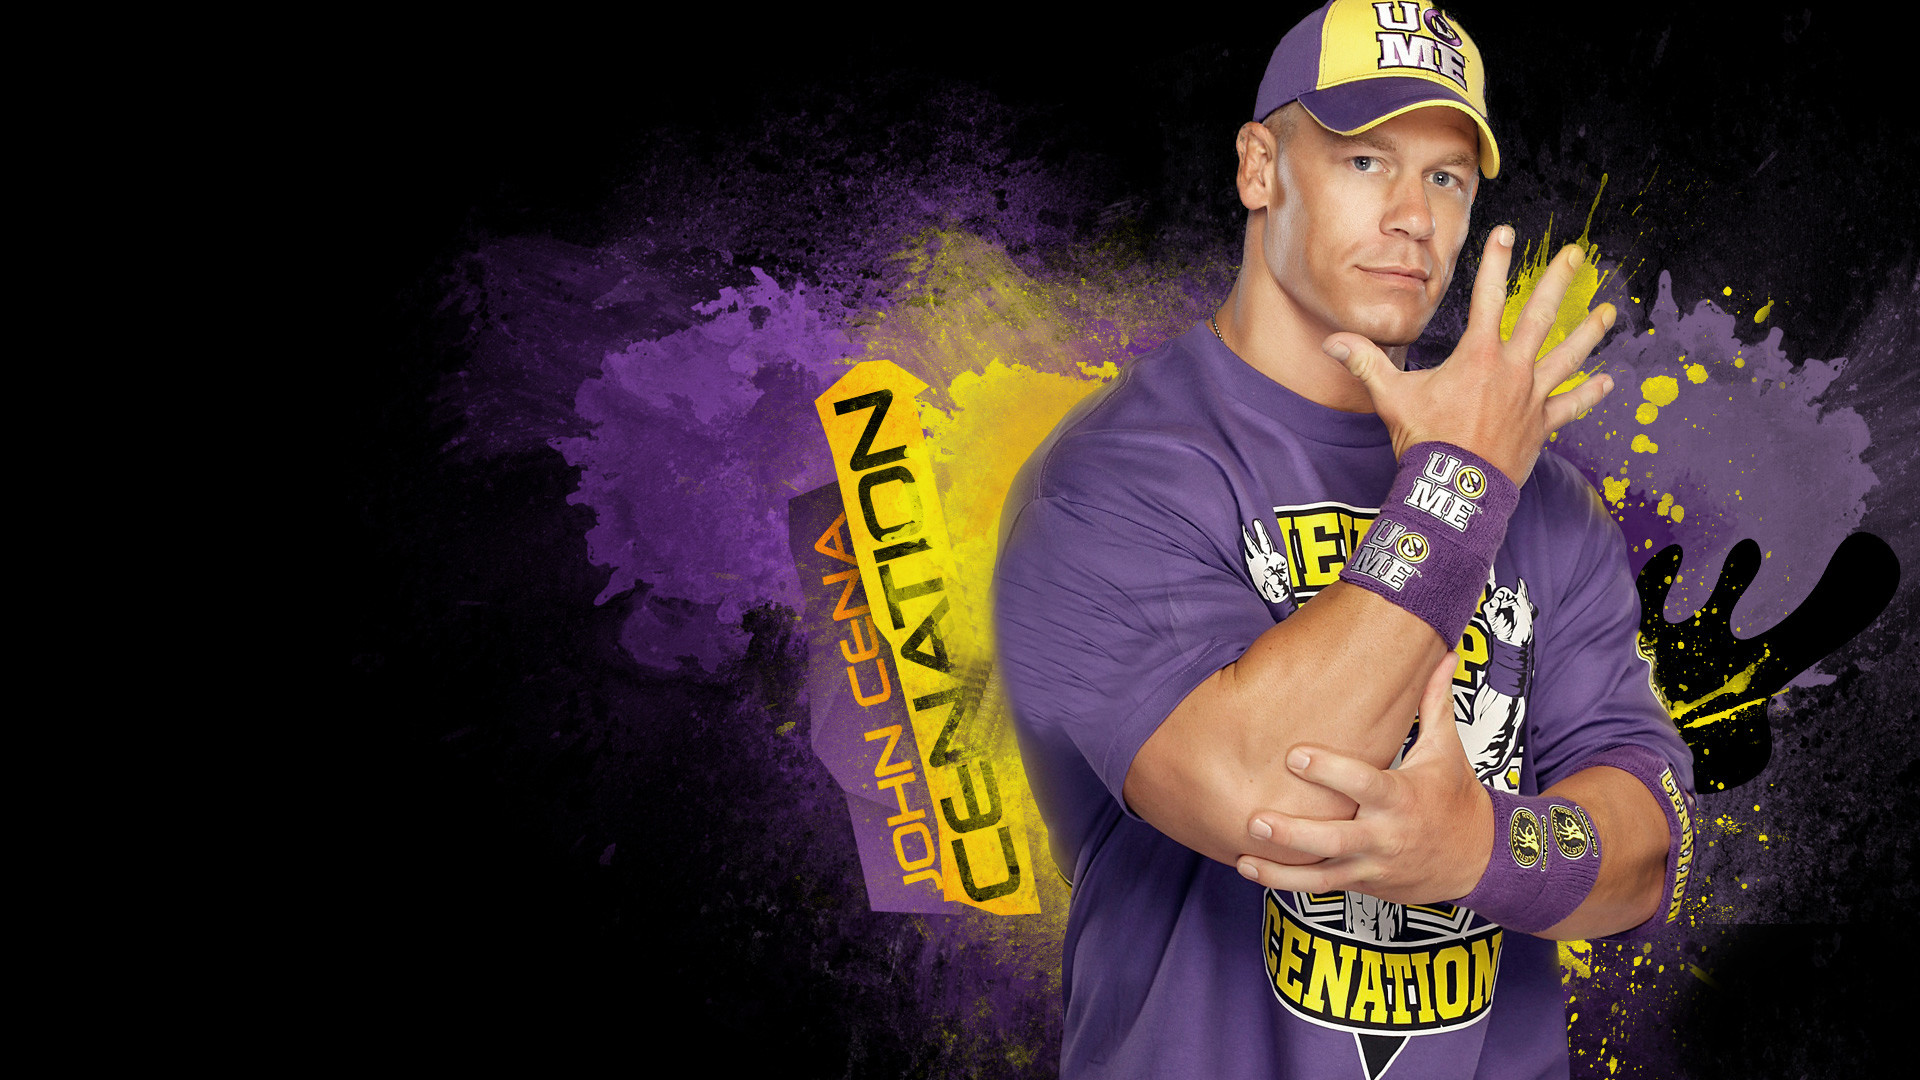 1920x1080 High Resolution John Cena Wallpaper Wallpaper